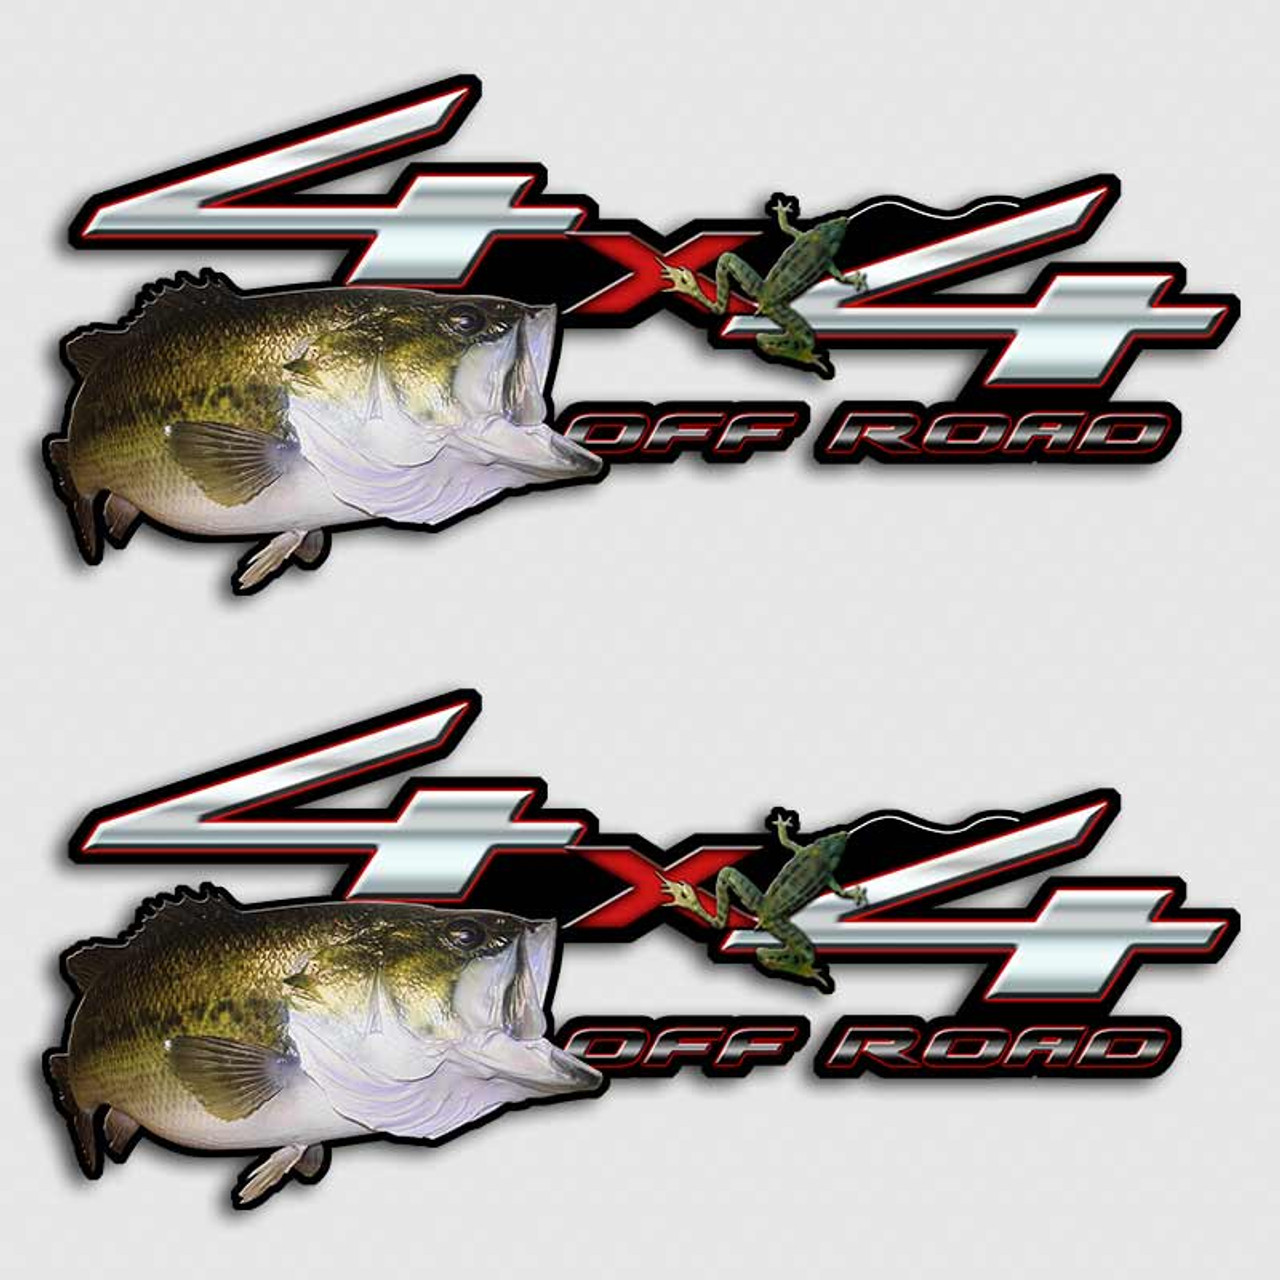 4x4 bass froggin off road truck decals